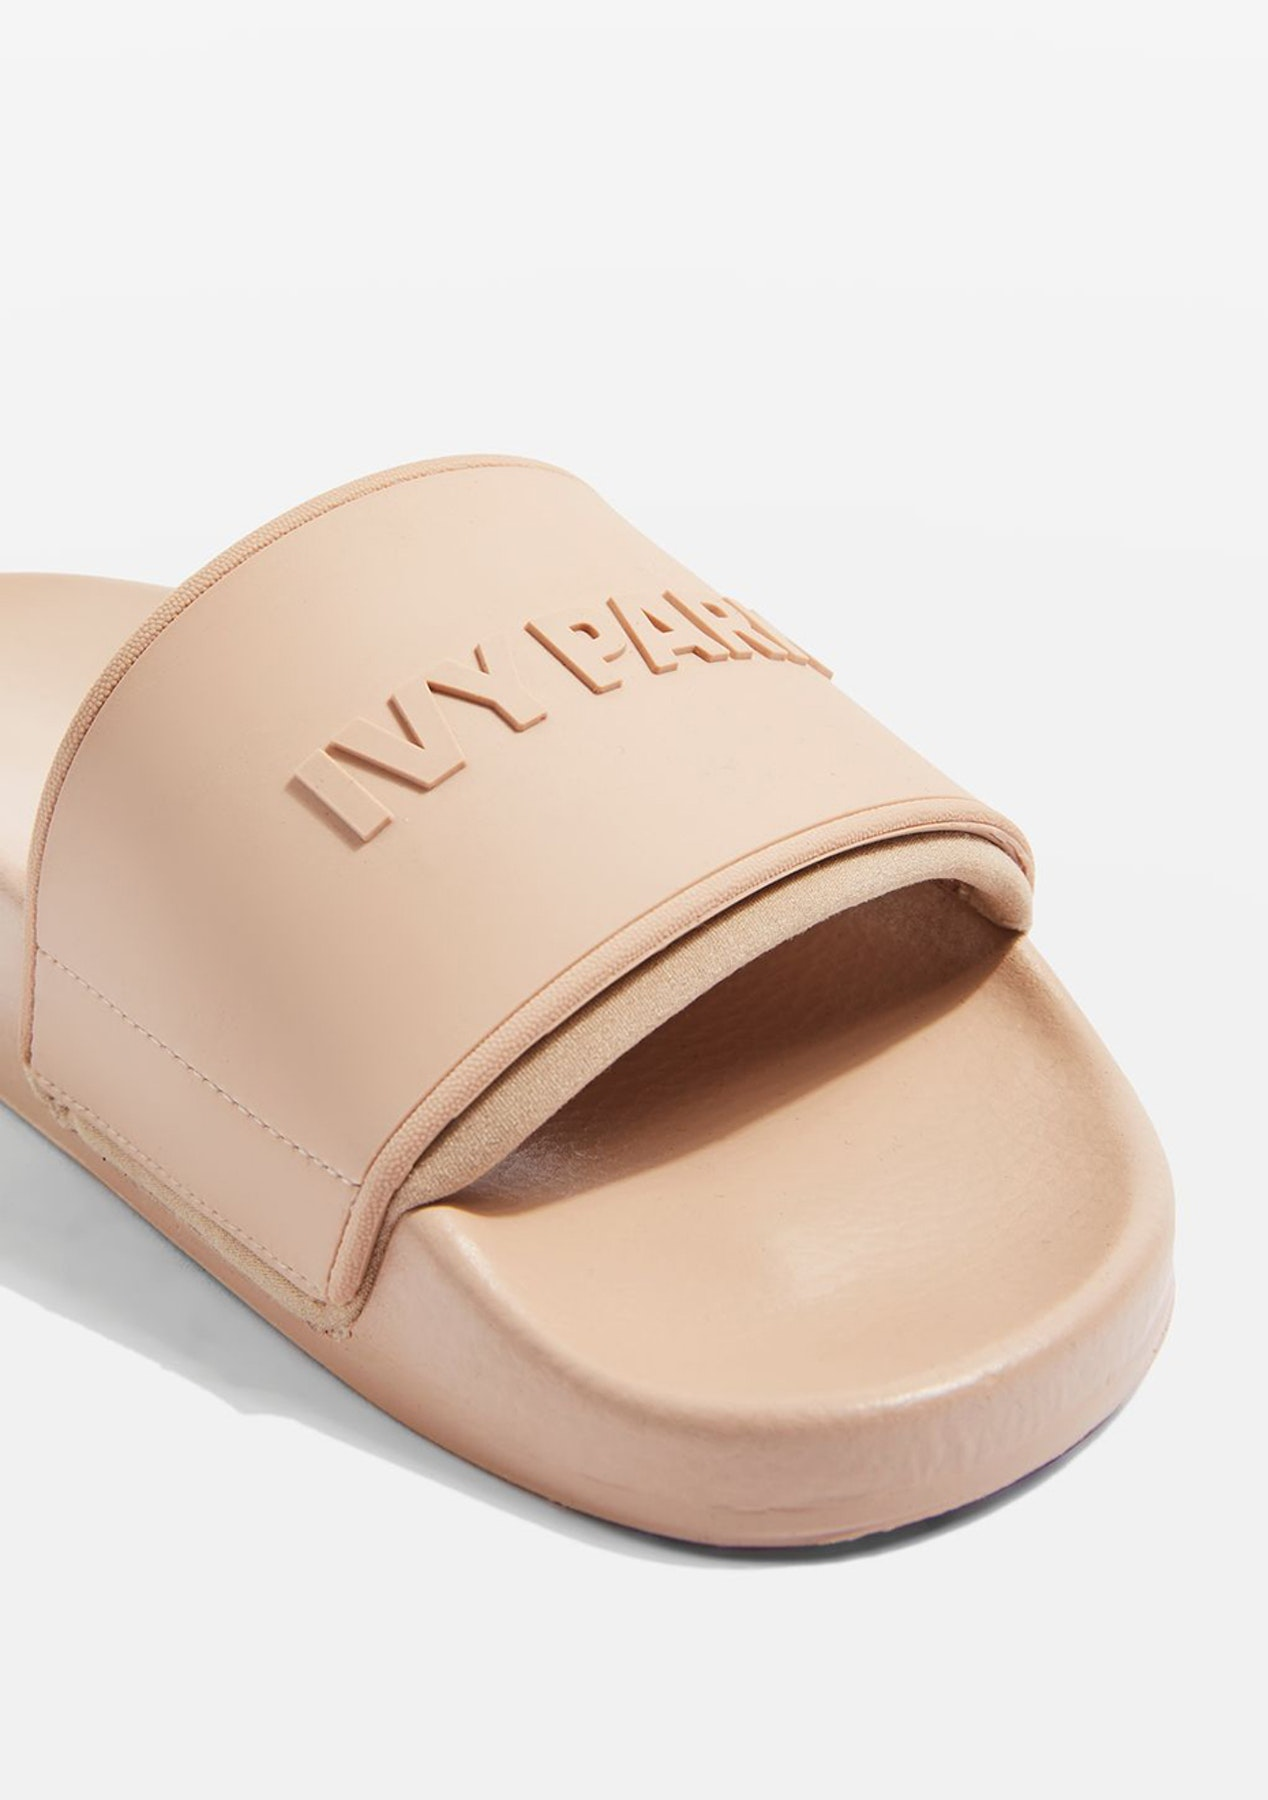 ccc4ed27f208c2 Ivy Park - Neo Lined Embossed Logo Slides - Dusty Pink - Ivy Park - Onceit